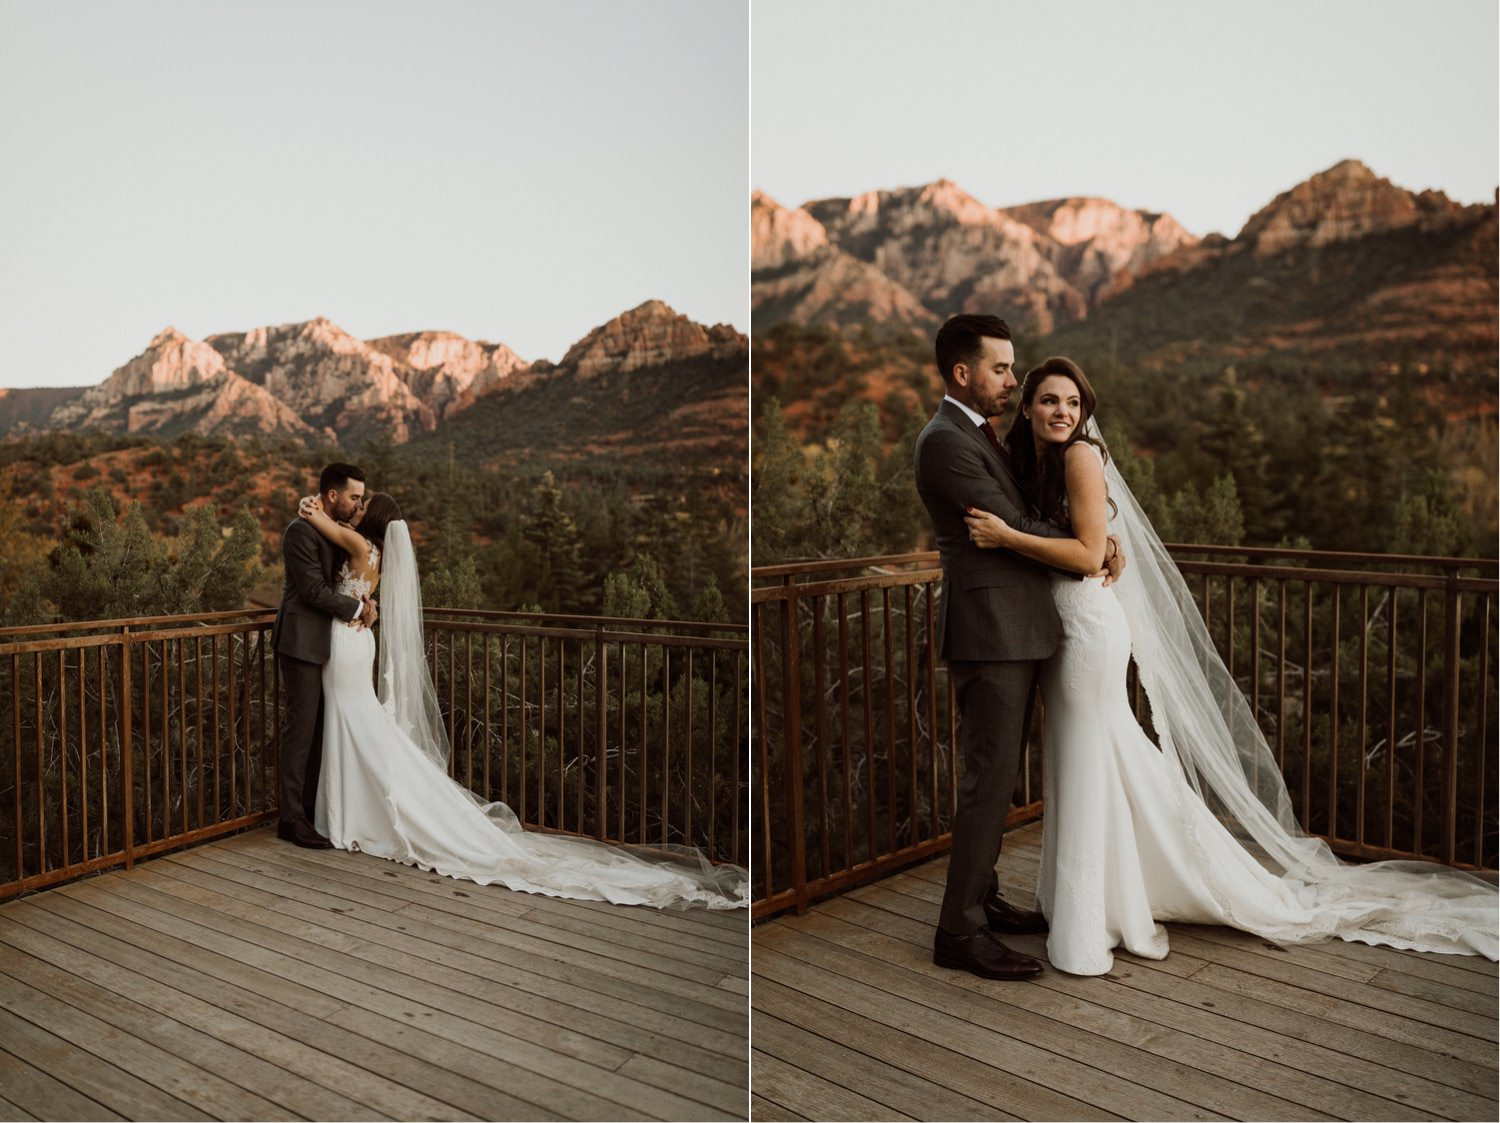 42_intimate-sedona-arizona-wedding-62_intimate-sedona-arizona-wedding-61.jpg